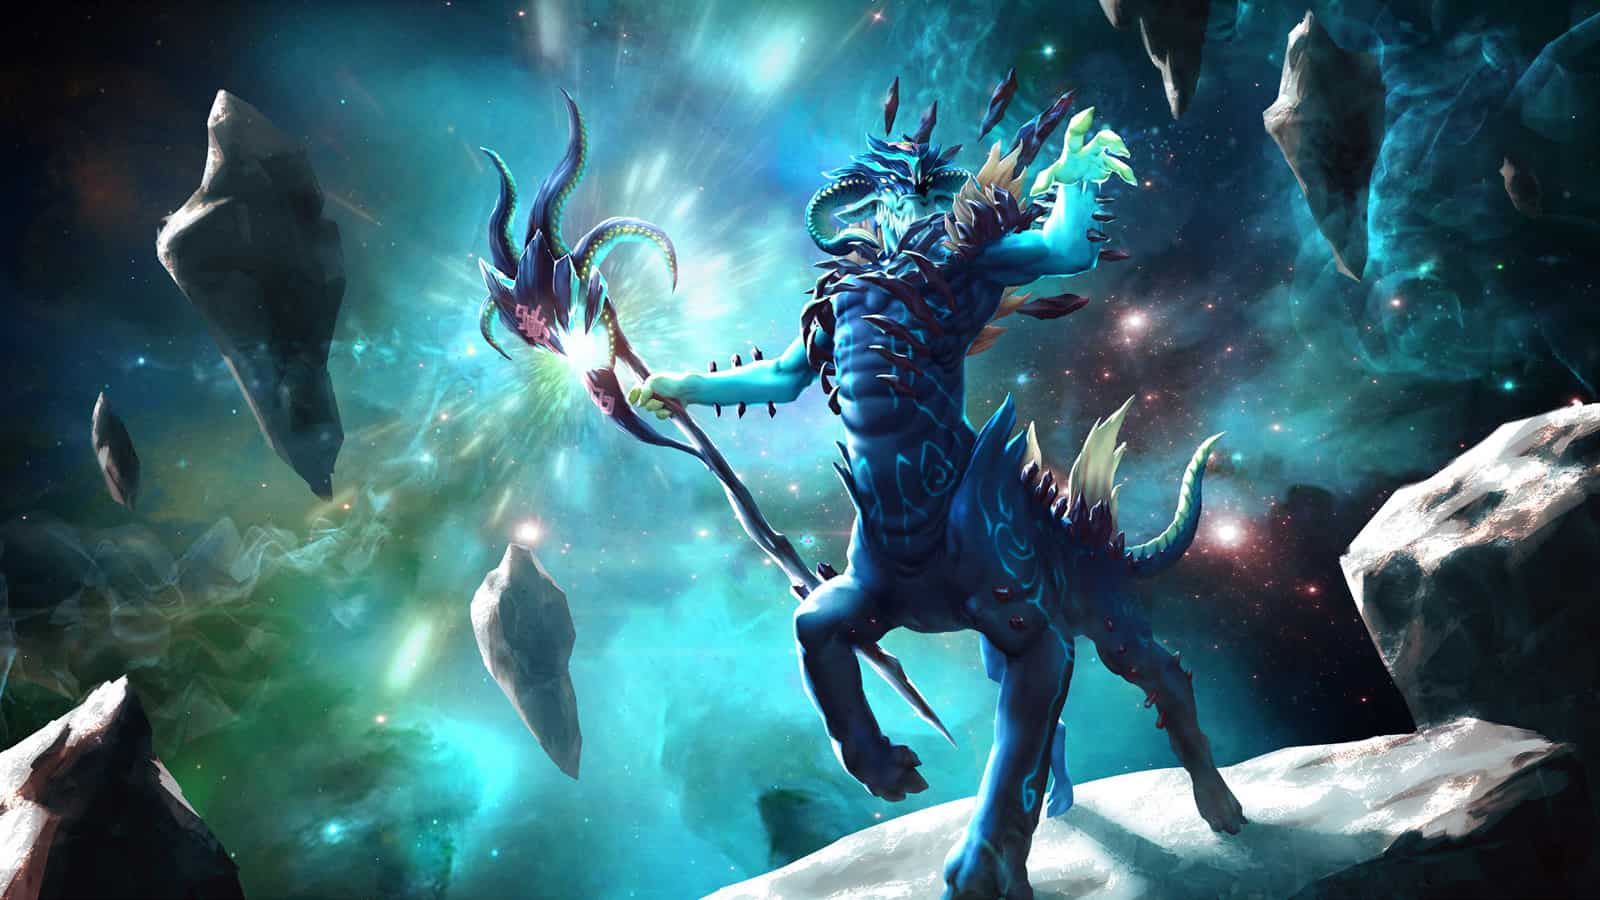 Many Interesting Changes For Dota 2 Meta With Today New Patch 7 12